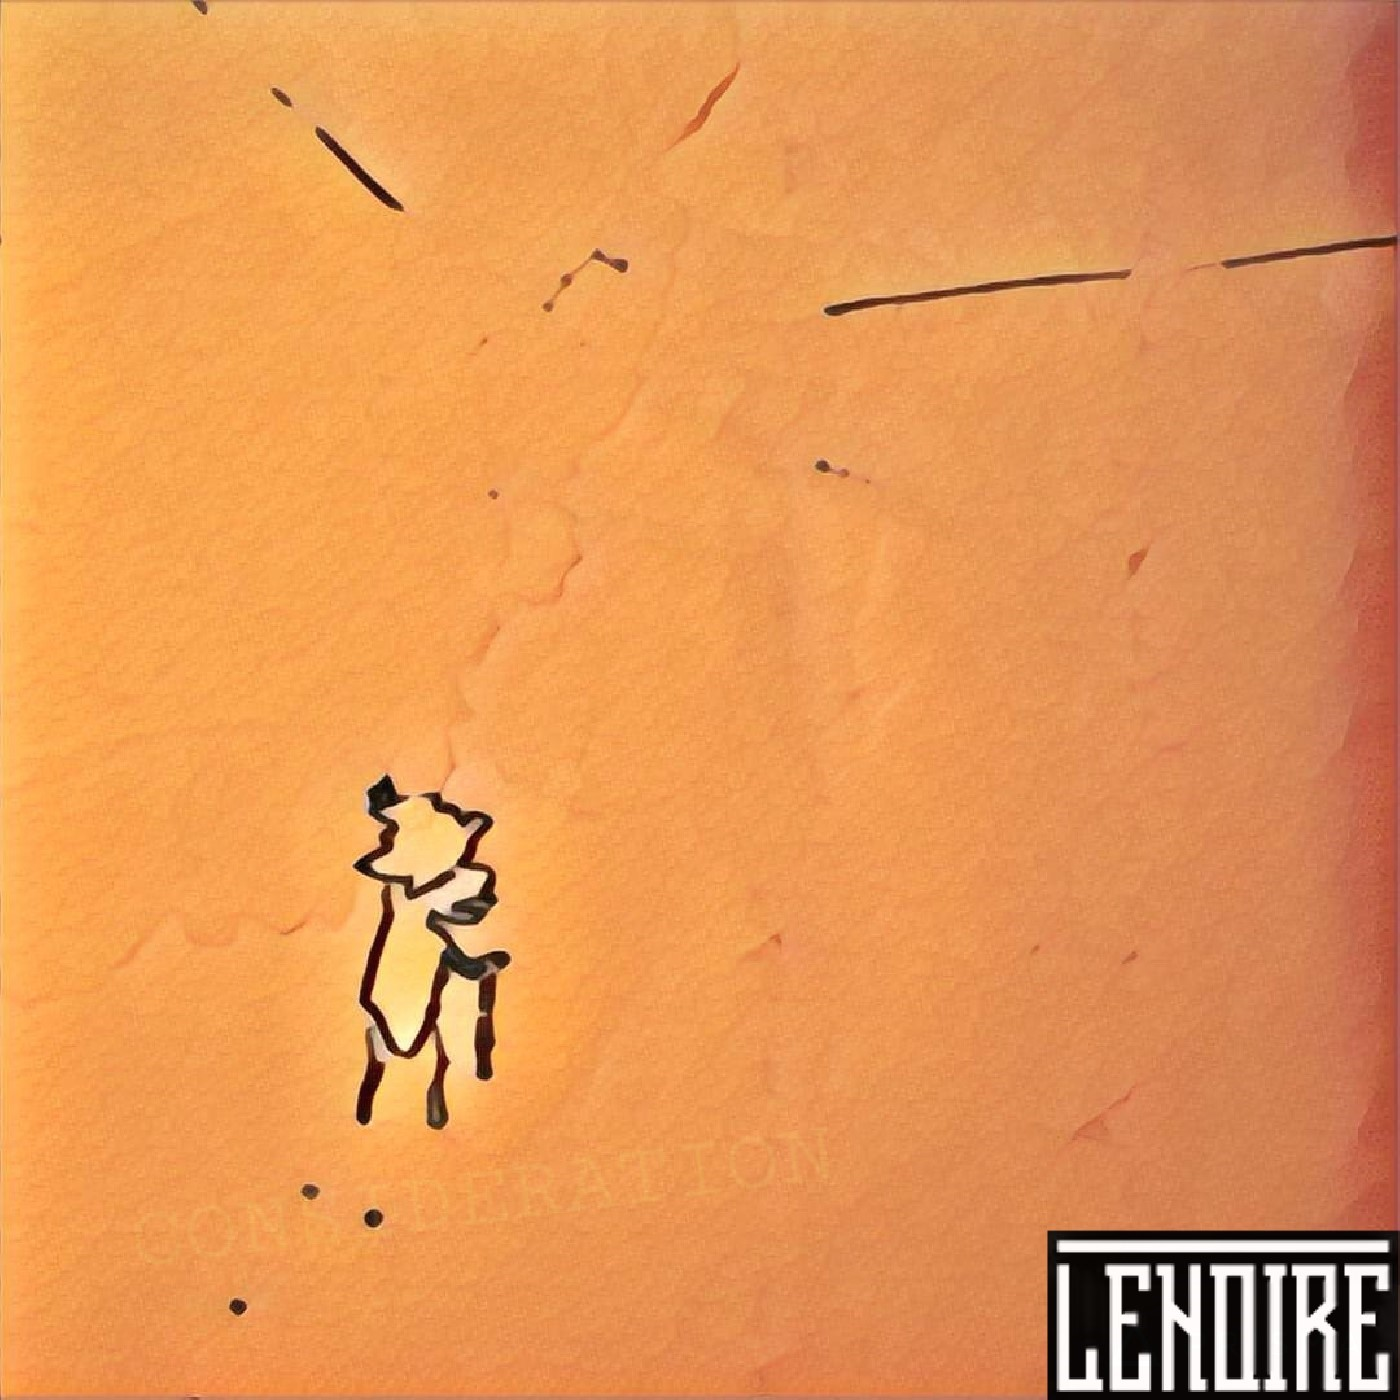 CONSIDERATION     With a grunge and progressive approach, this EP marks the entrance of LENOIRE into the Montreal scene. The two songs, recorded swiftly demonstrate a creative volition pushed to its breaking point, showing the darker side of the formation. Confident and scathing LENOIRE's second EP allows an underlying beauty to shine through.